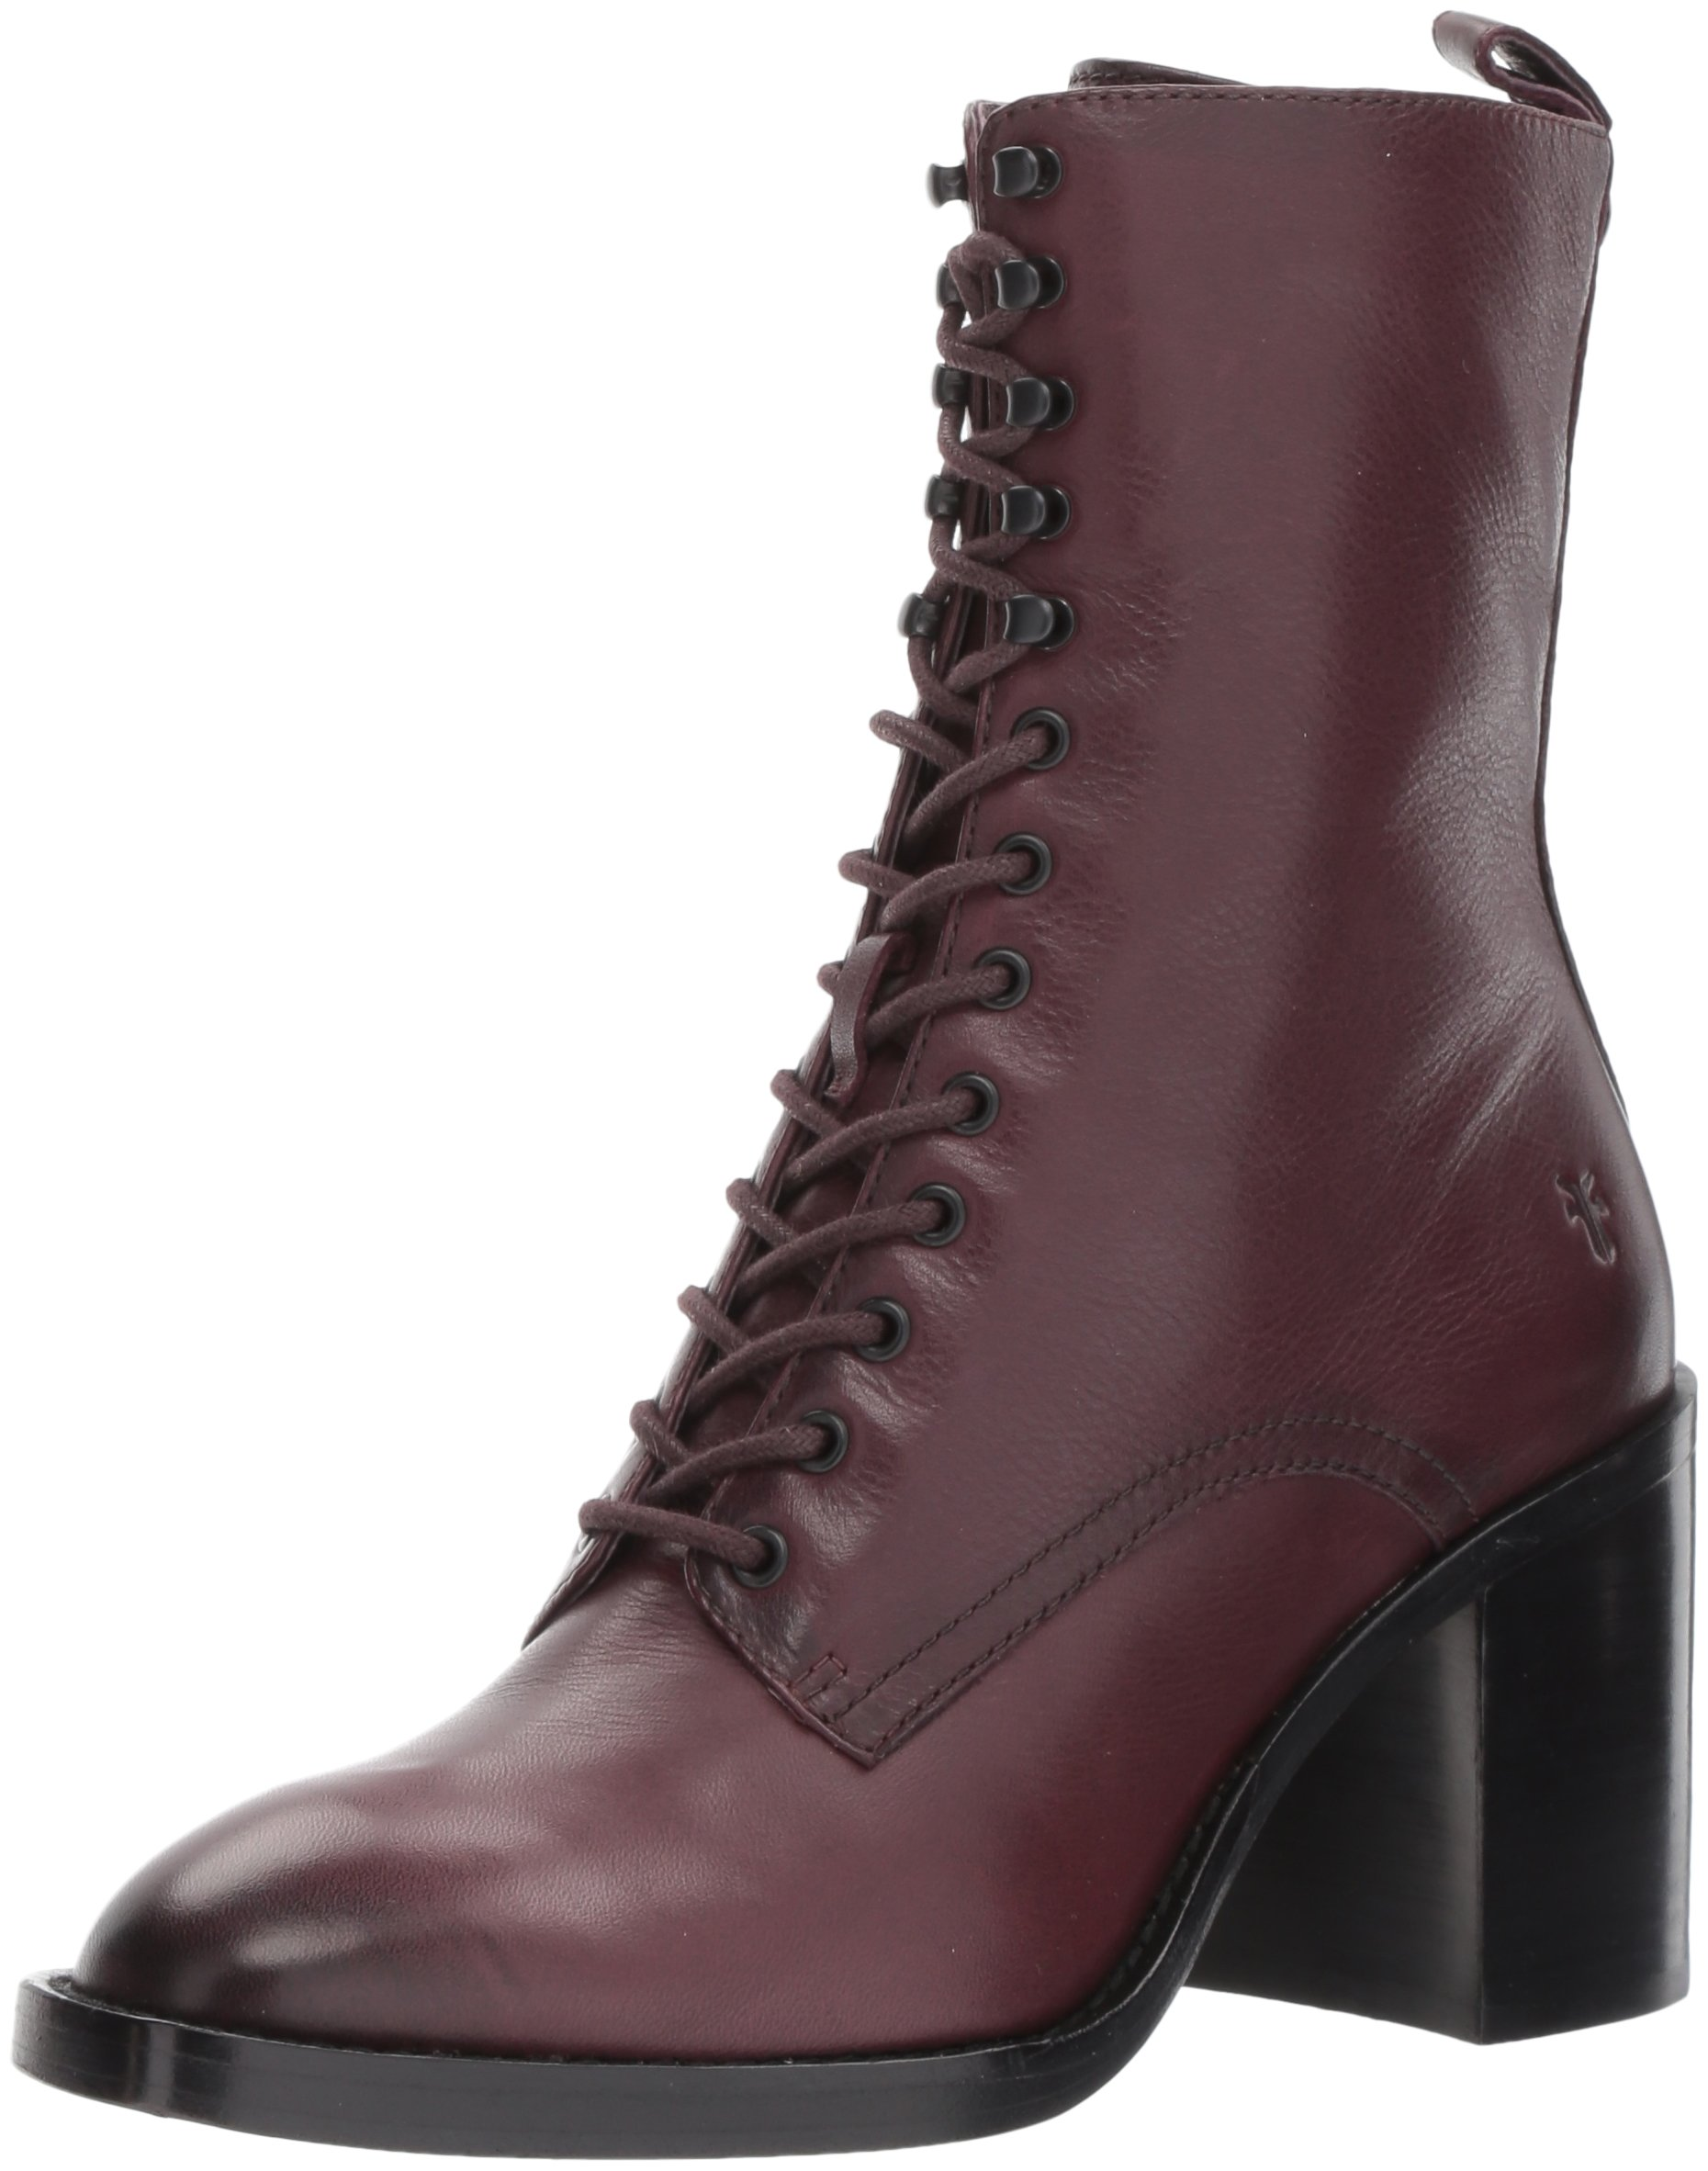 FRYE Women's Pia Combat Boot, Wine, 7 M US